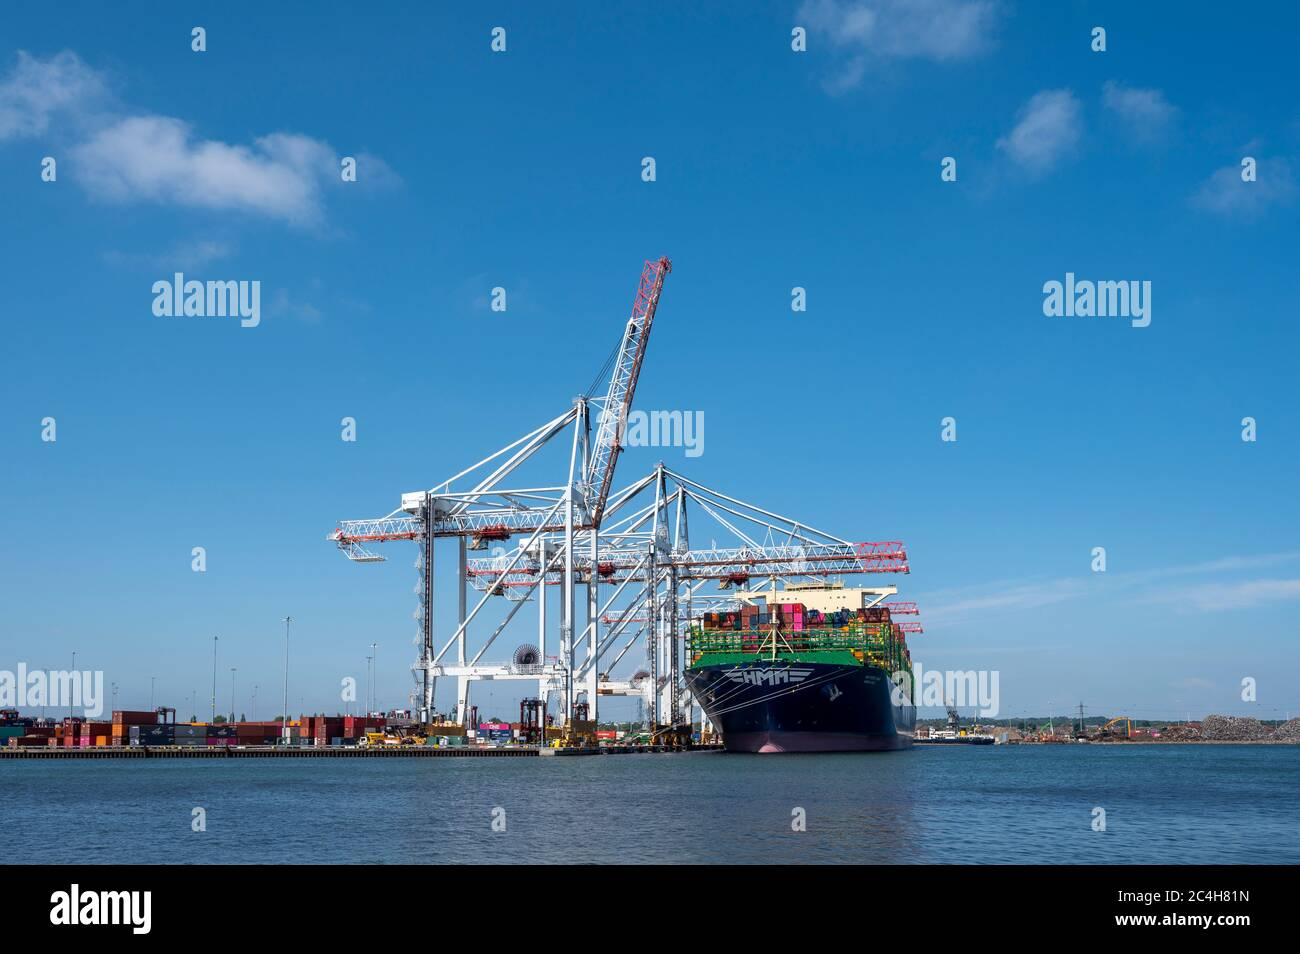 HMM Oslo docked at Southampton, Hampshire, England, United Kingdom seen from Marchwood. Stock Photo